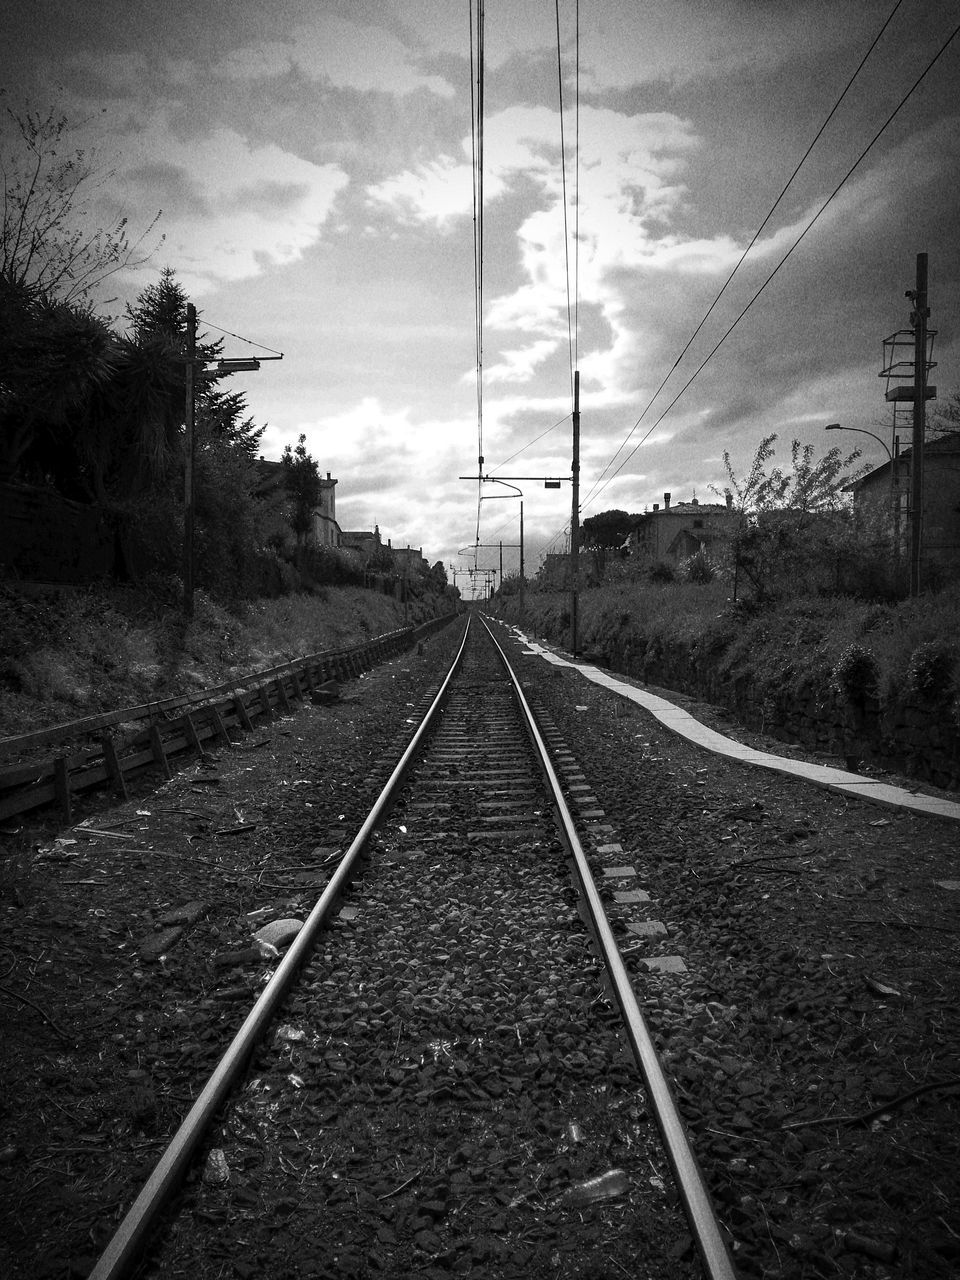 railroad track, rail transportation, transportation, diminishing perspective, cable, sky, the way forward, no people, railway track, cloud - sky, electricity, electricity pylon, landscape, day, parallel, outdoors, nature